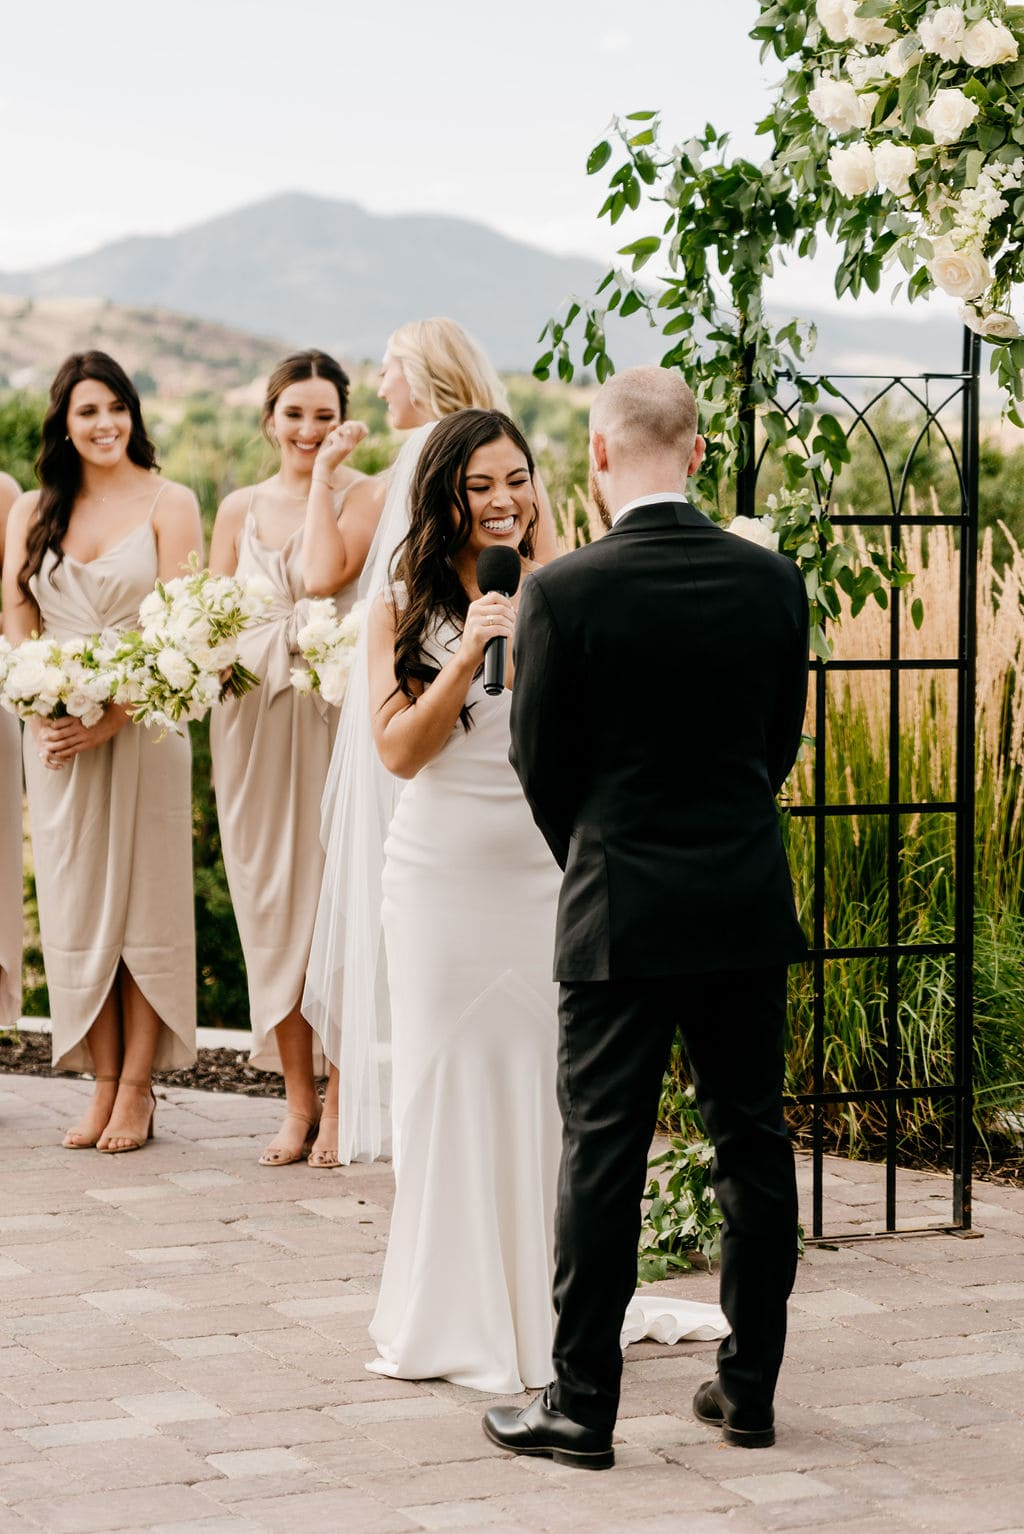 Wedding Ceremony at Best Denver Wedding Venue The Manor House